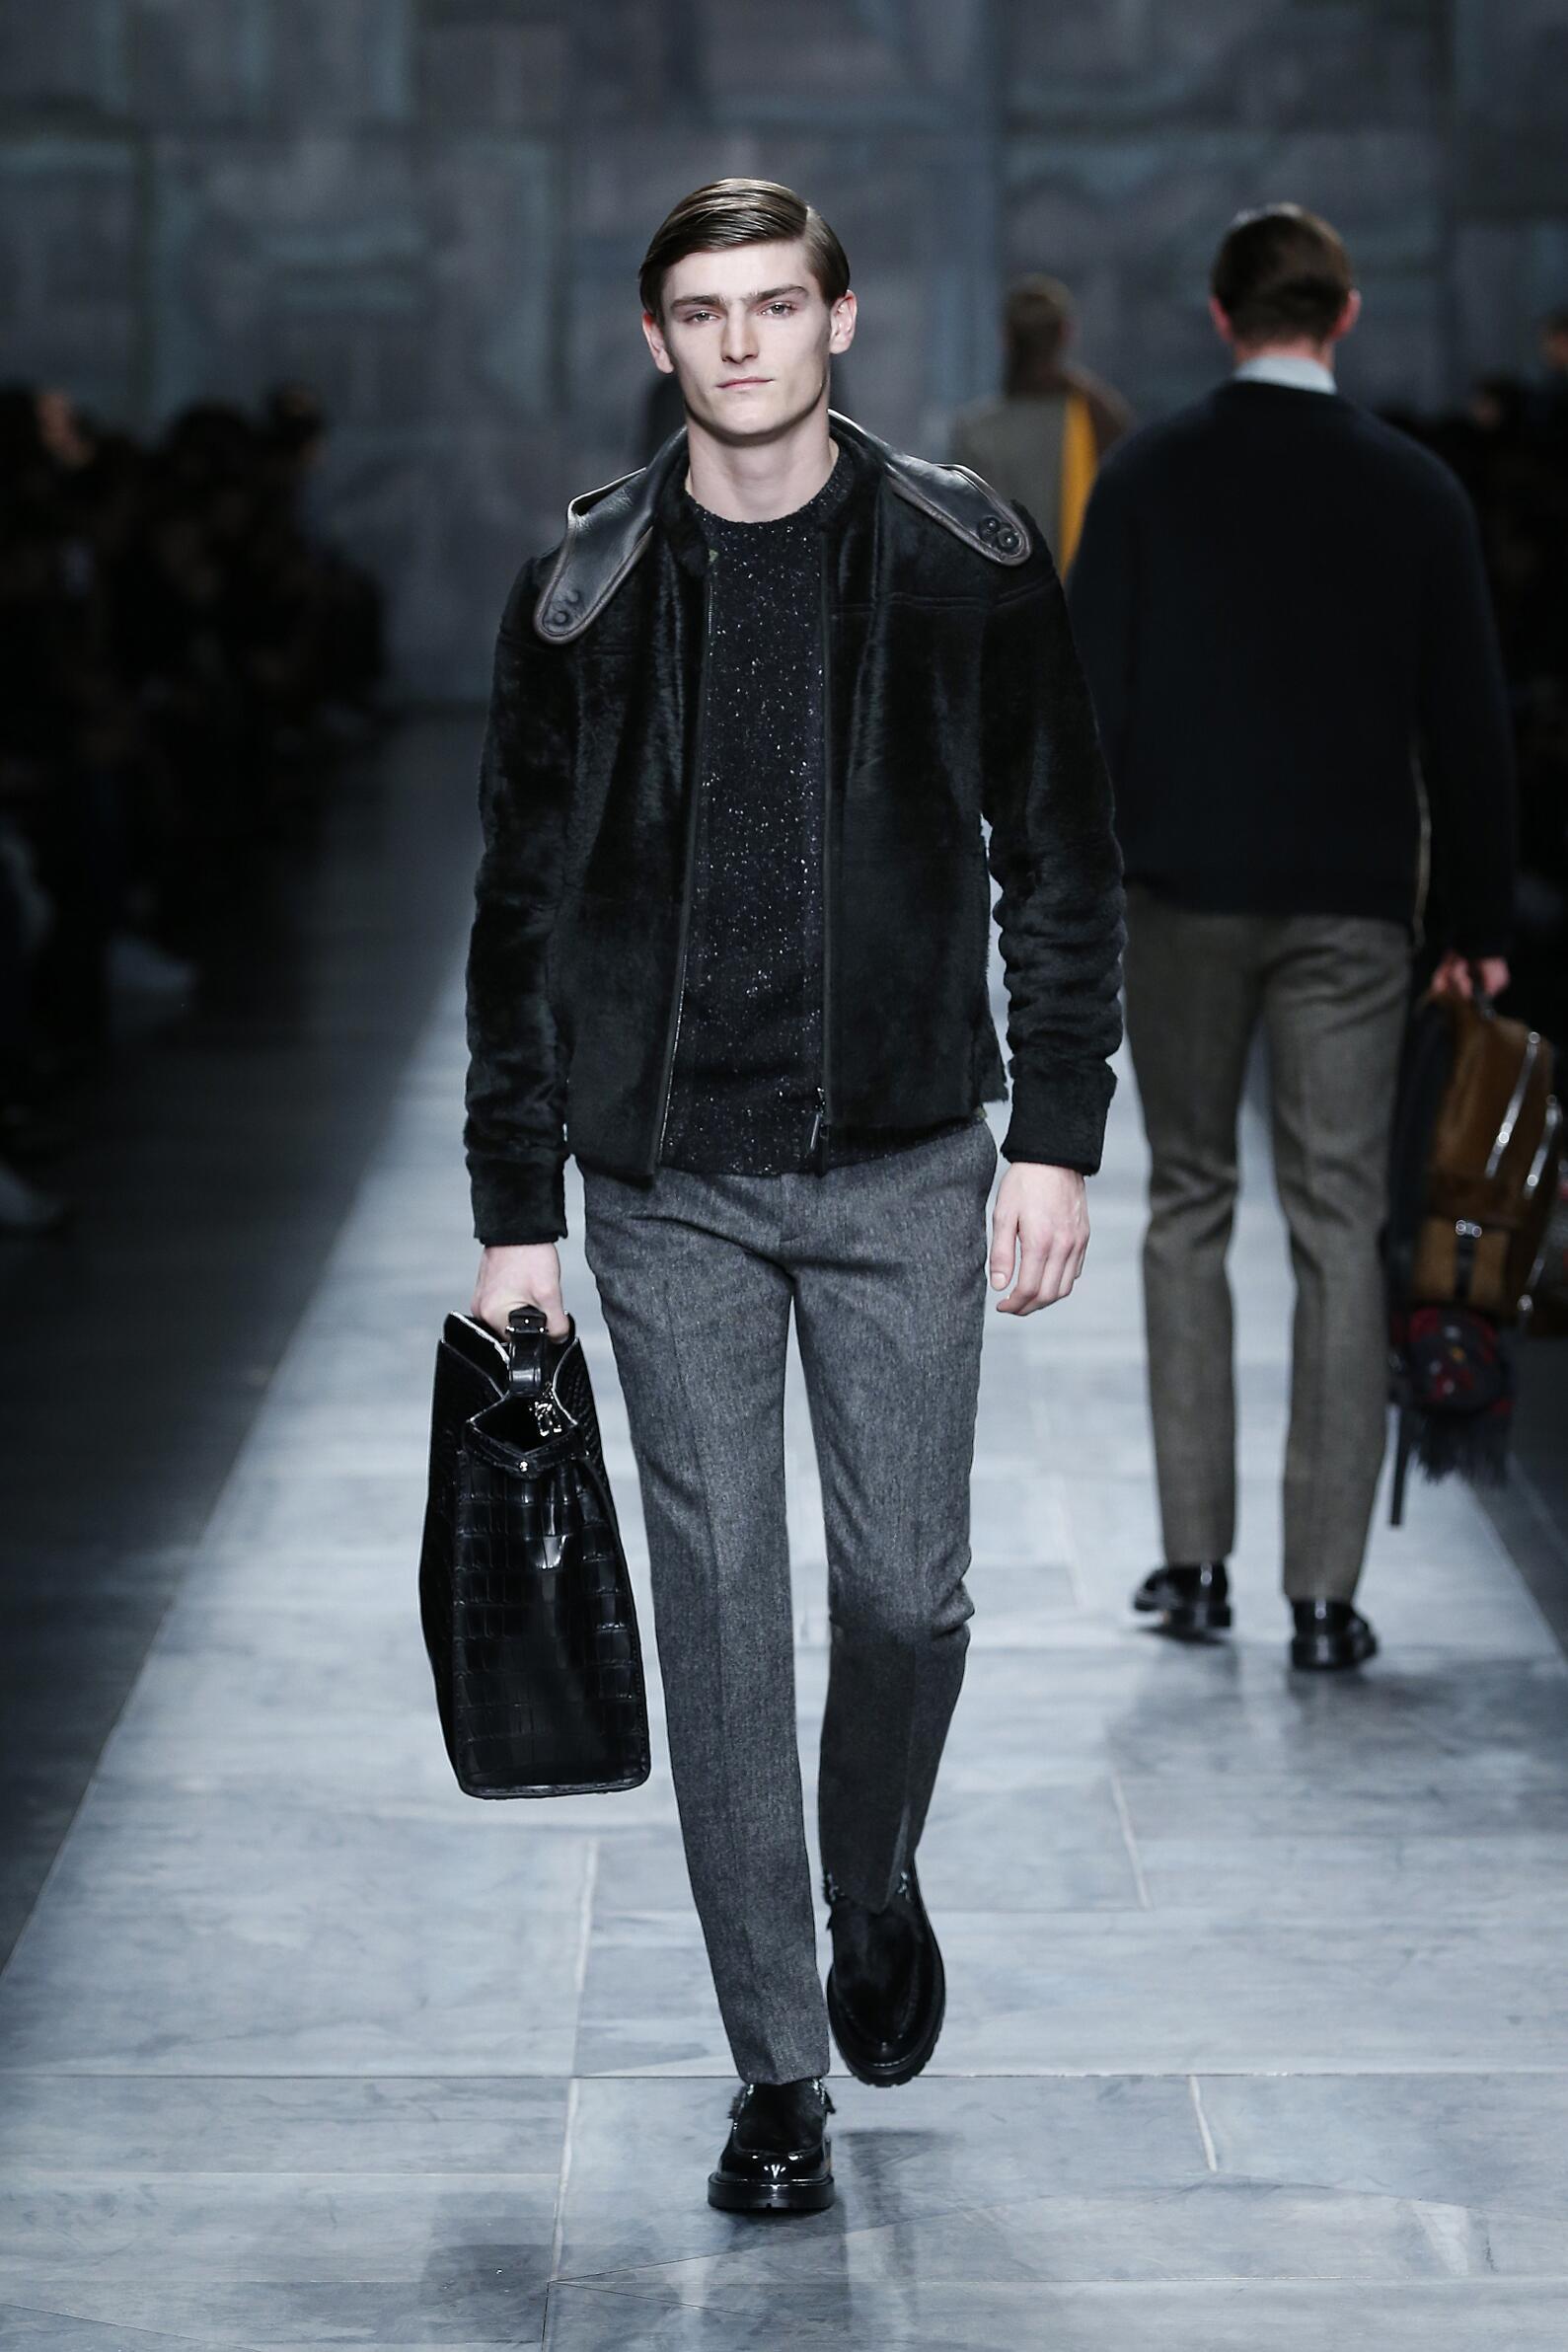 Runway Fendi Fall Winter 2015 16 Men's Collection Milan Fashion Week